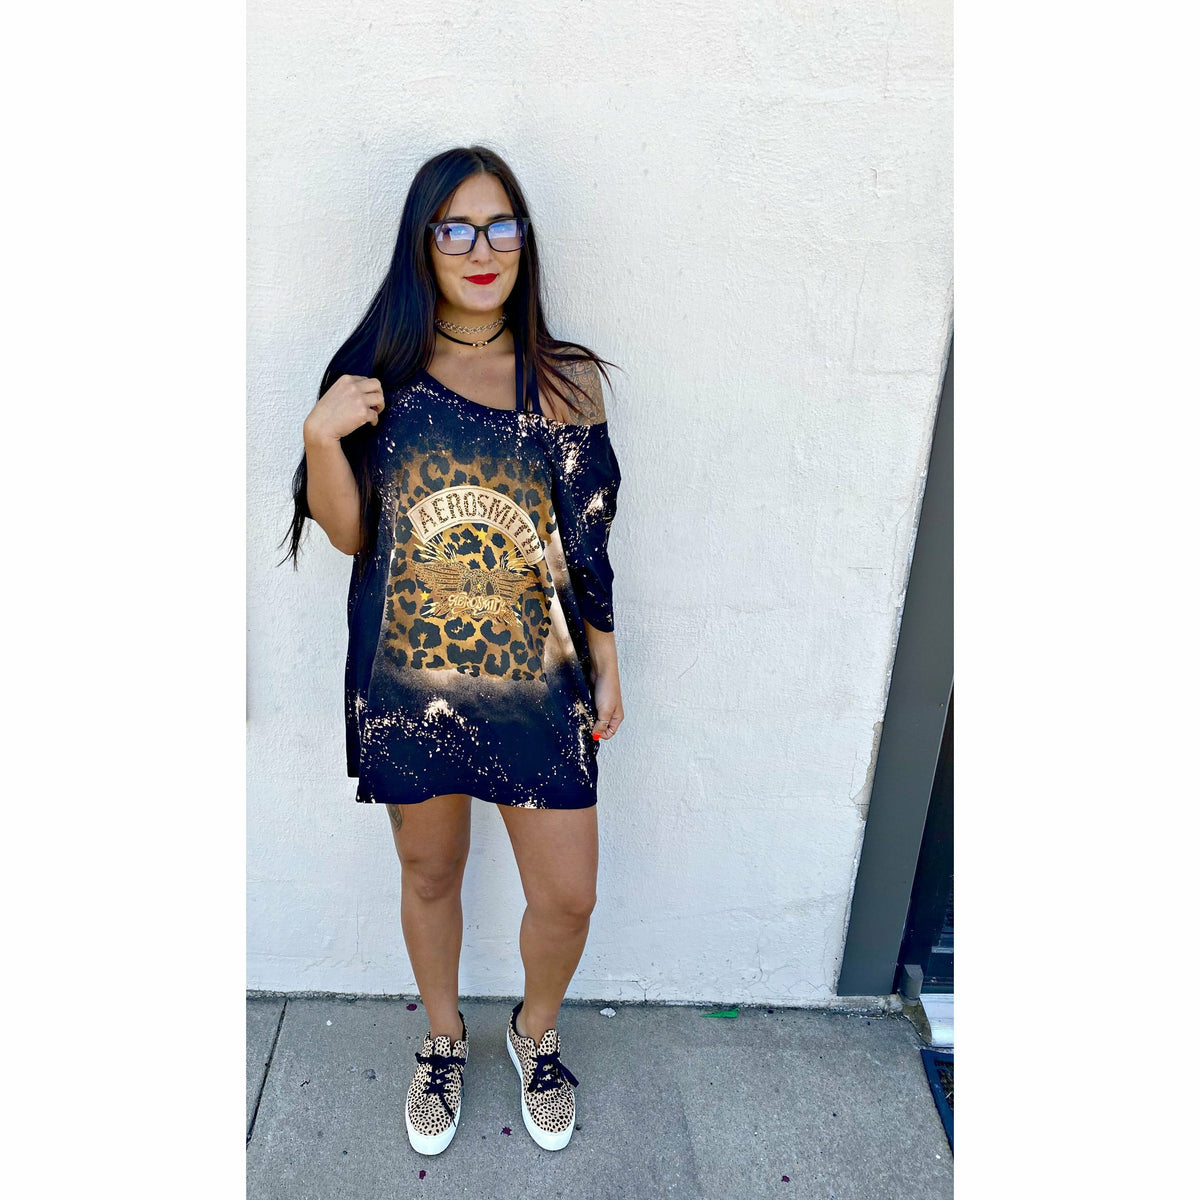 Aerosmith T-Shirt Dress